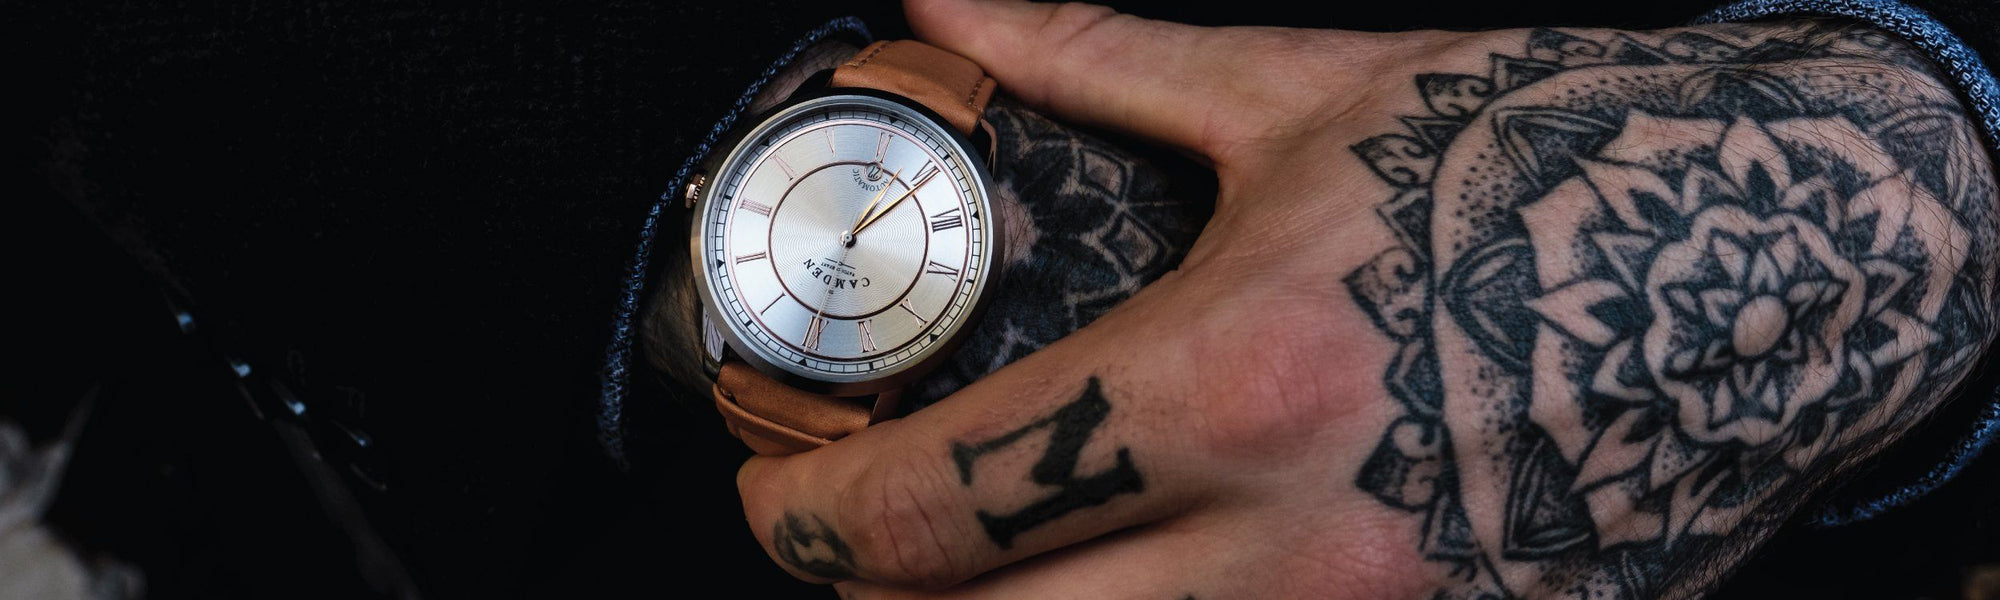 No.29 Automatic Watch